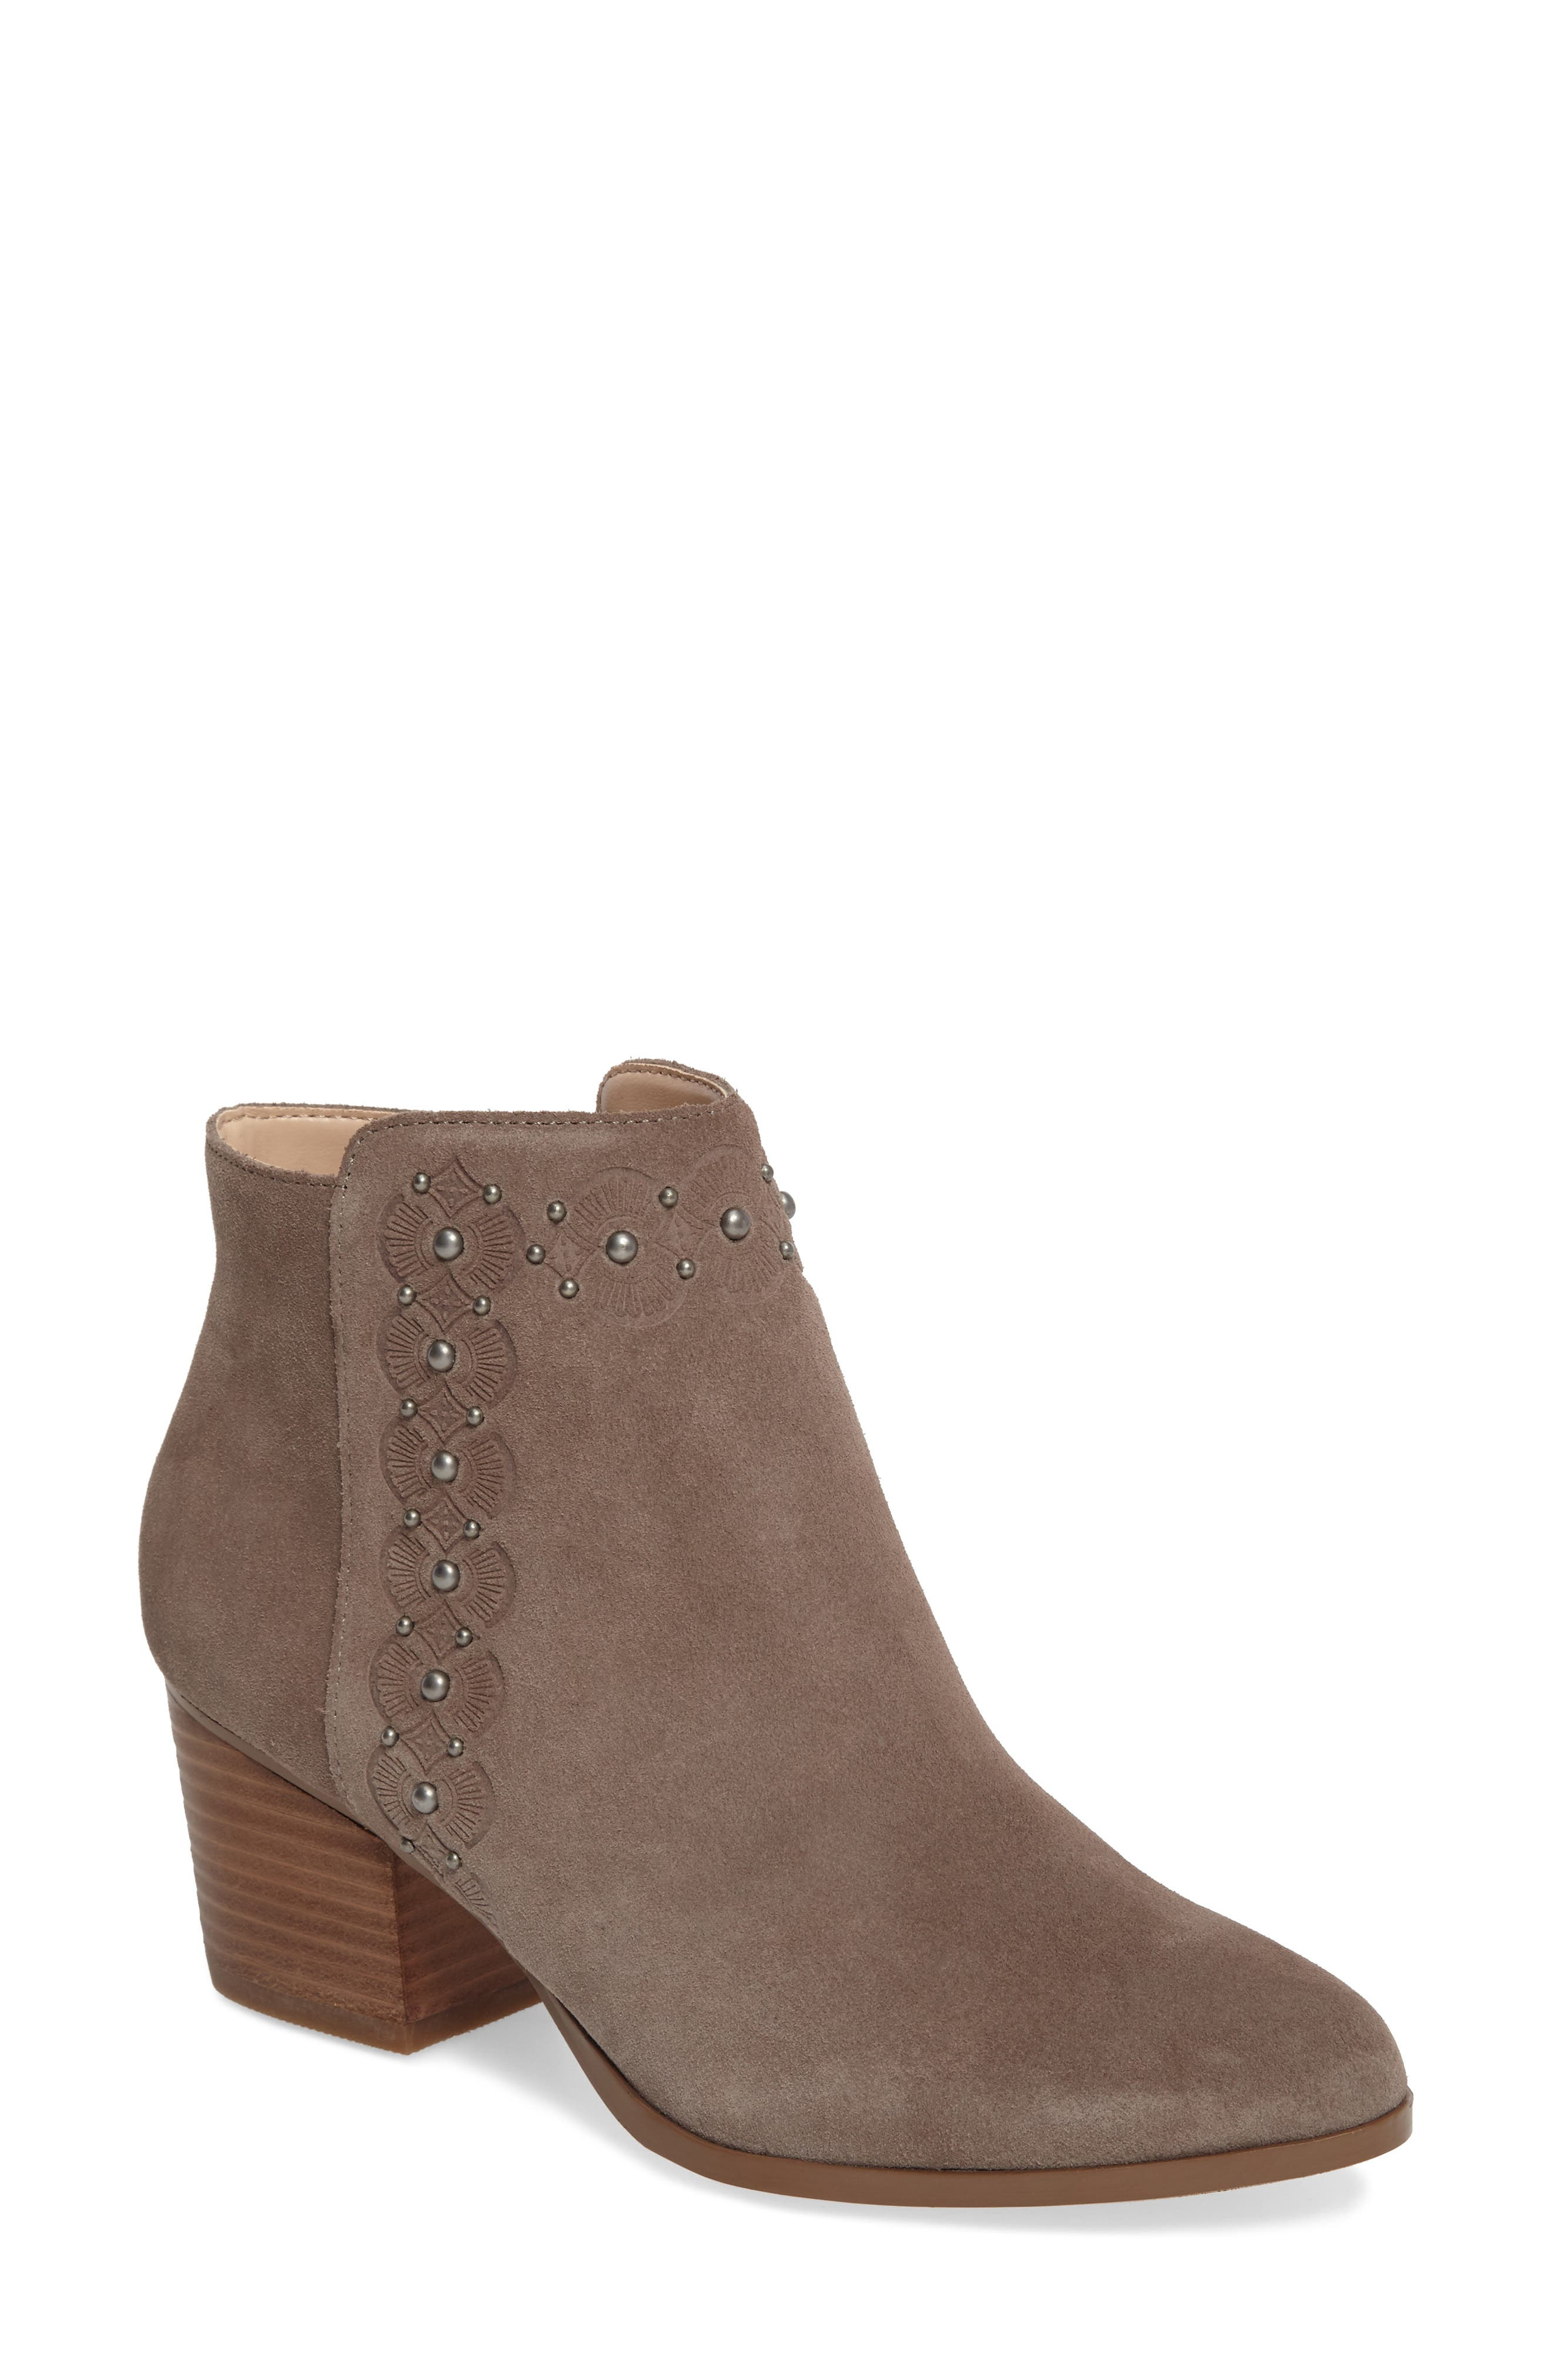 Gala Studded Embossed Bootie,                         Main,                         color, 020